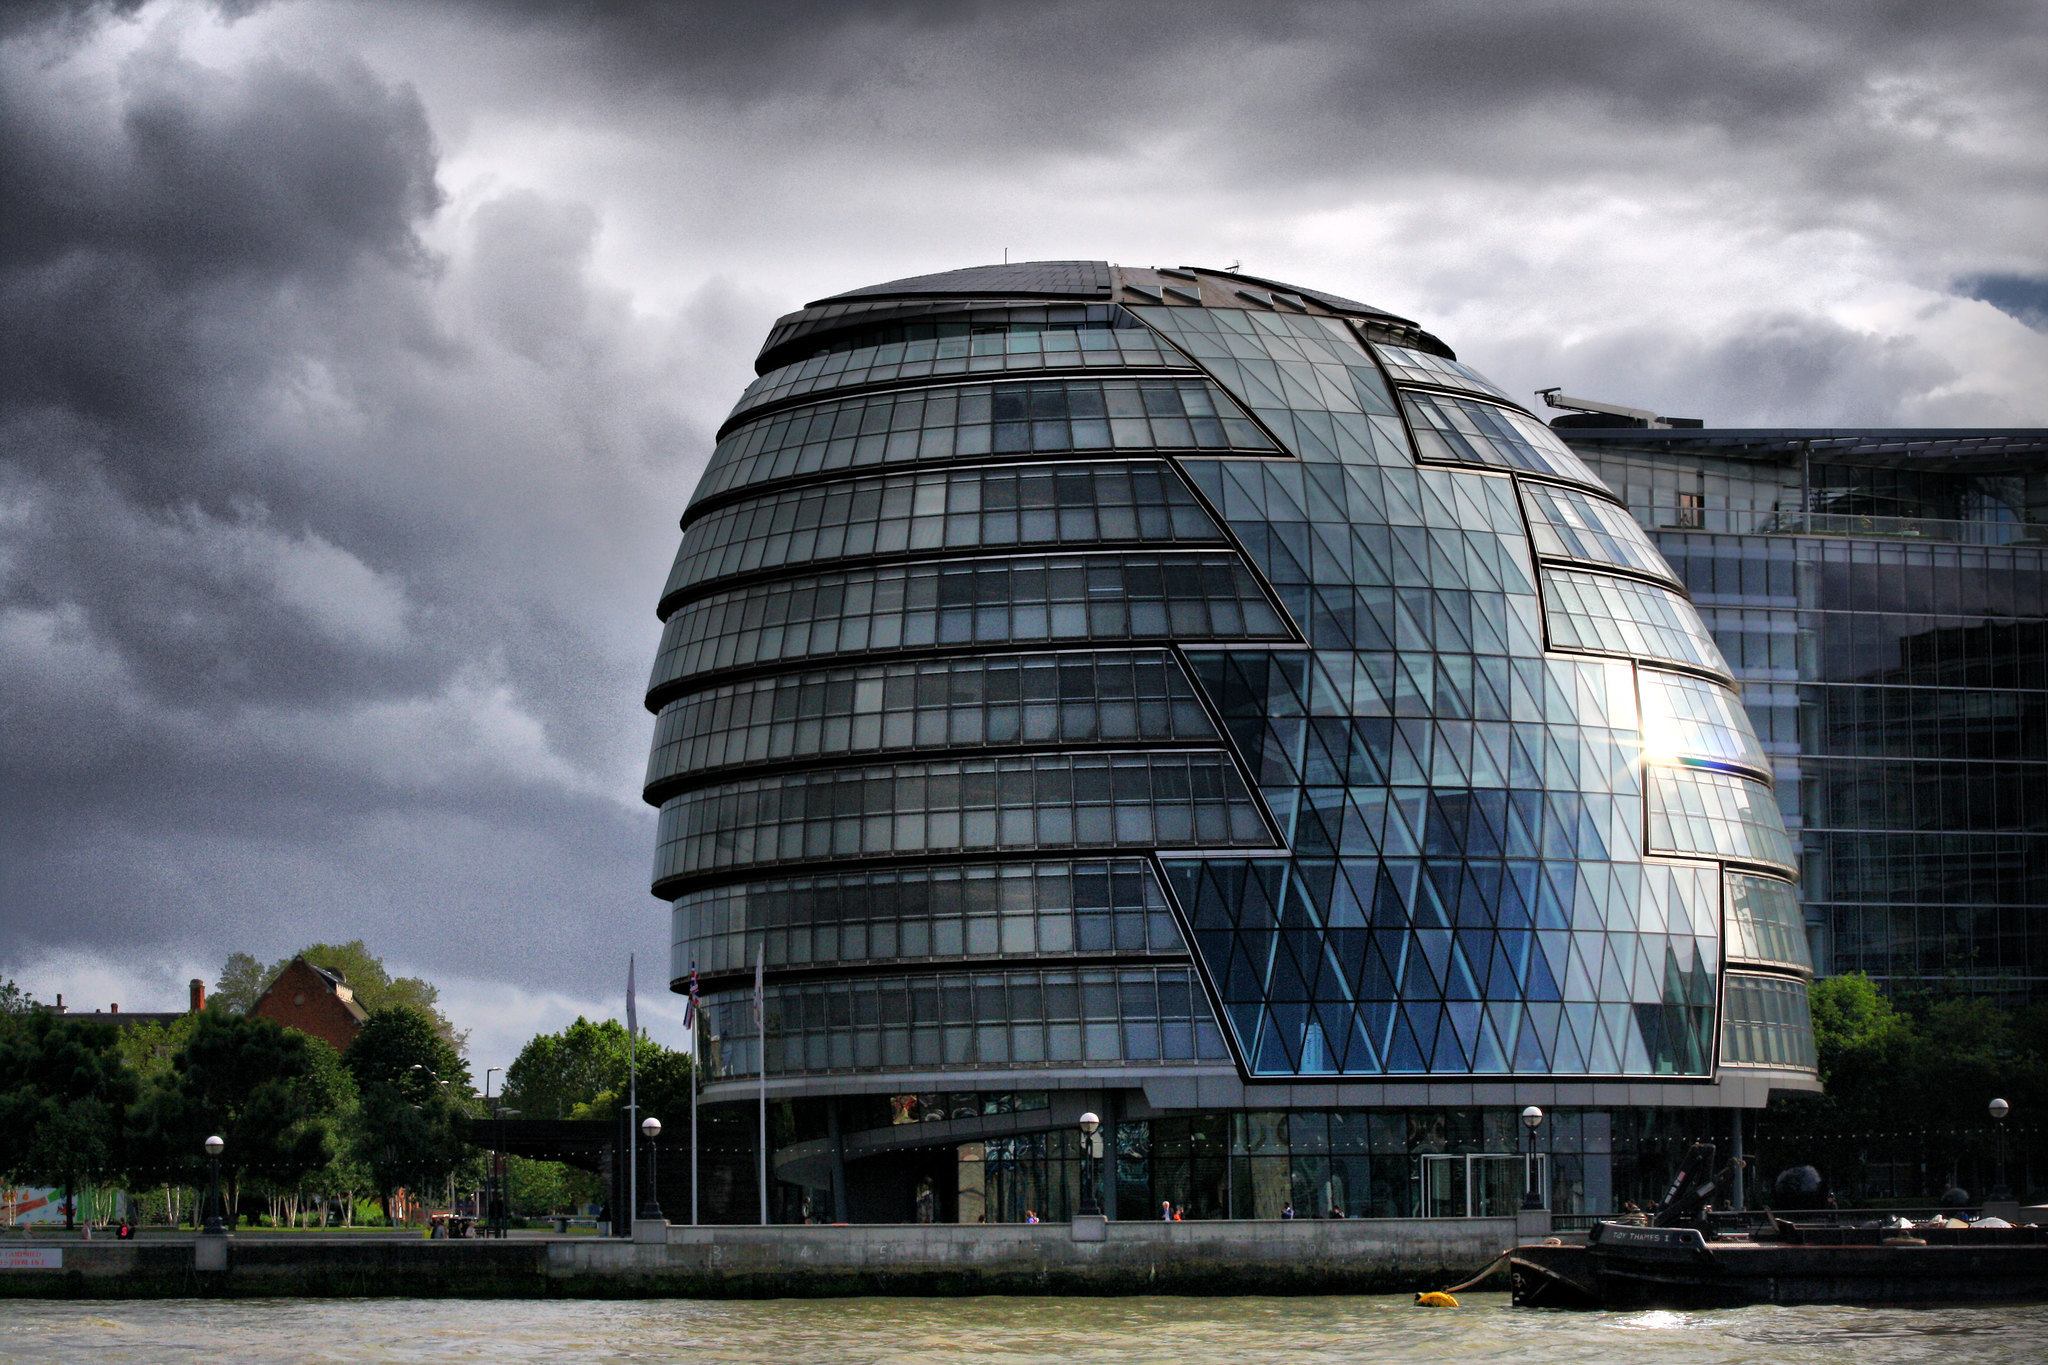 a bulbous governmental building in london designed by foster + partners